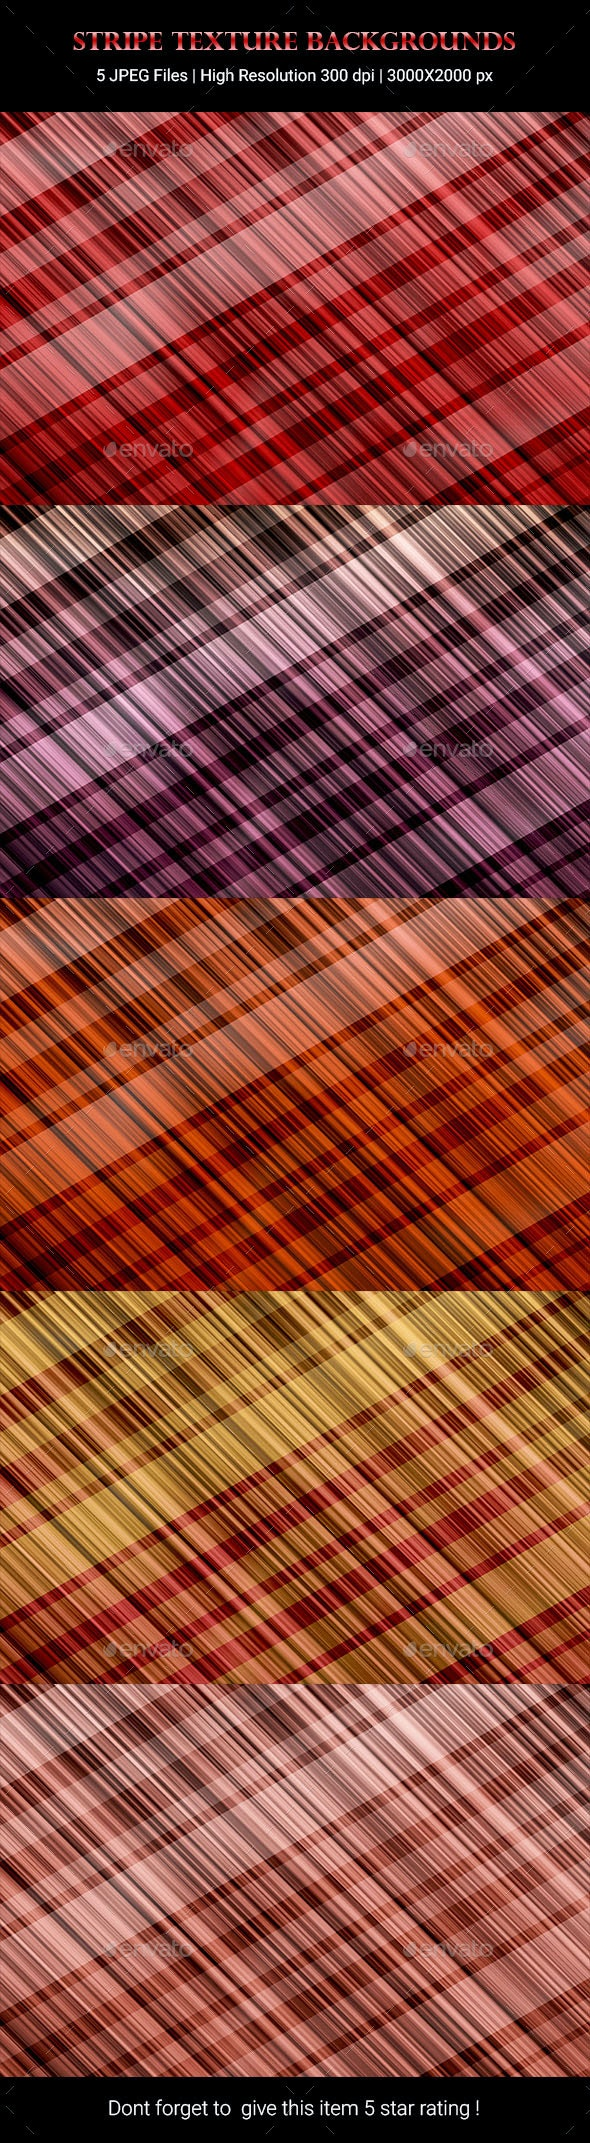 Stripe Texture Backgrounds - Backgrounds Graphics